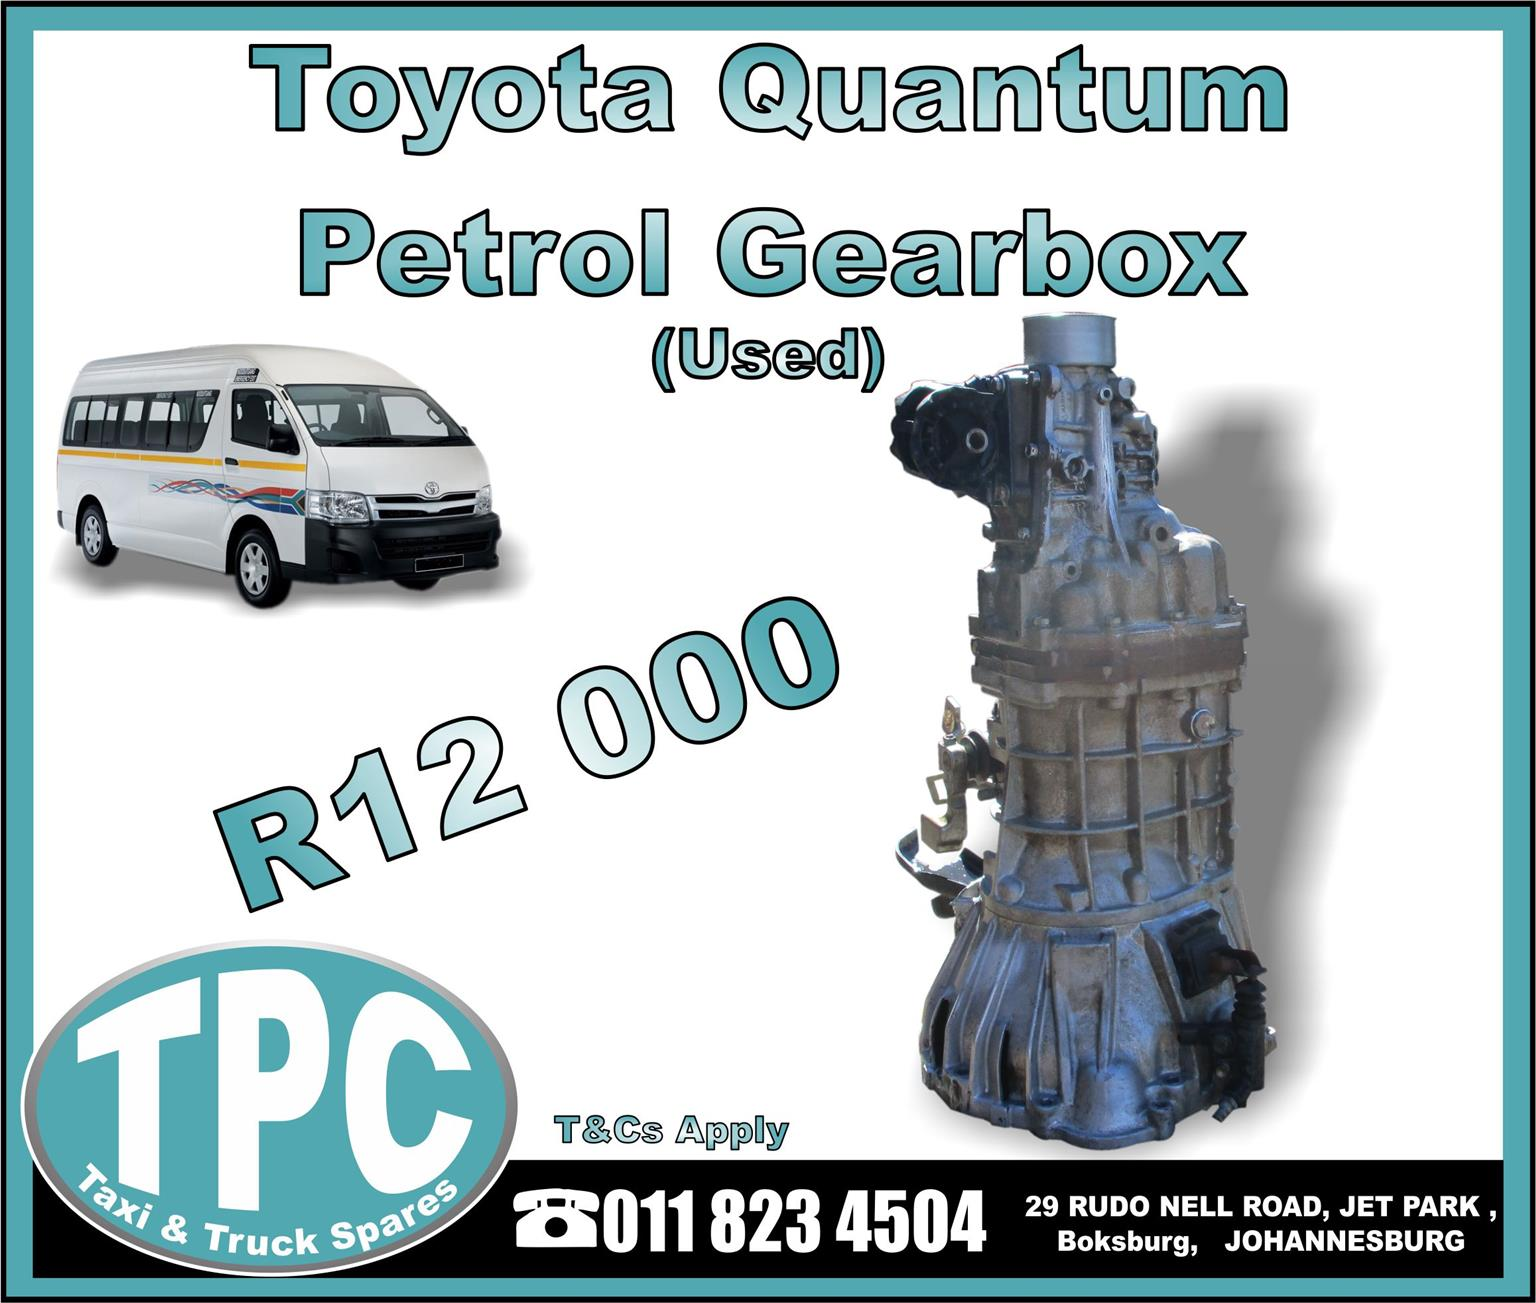 Toyota Quantum Petrol Gearbox - Used - New And Used Quality Replacement Taxi Spare Parts - TPC.